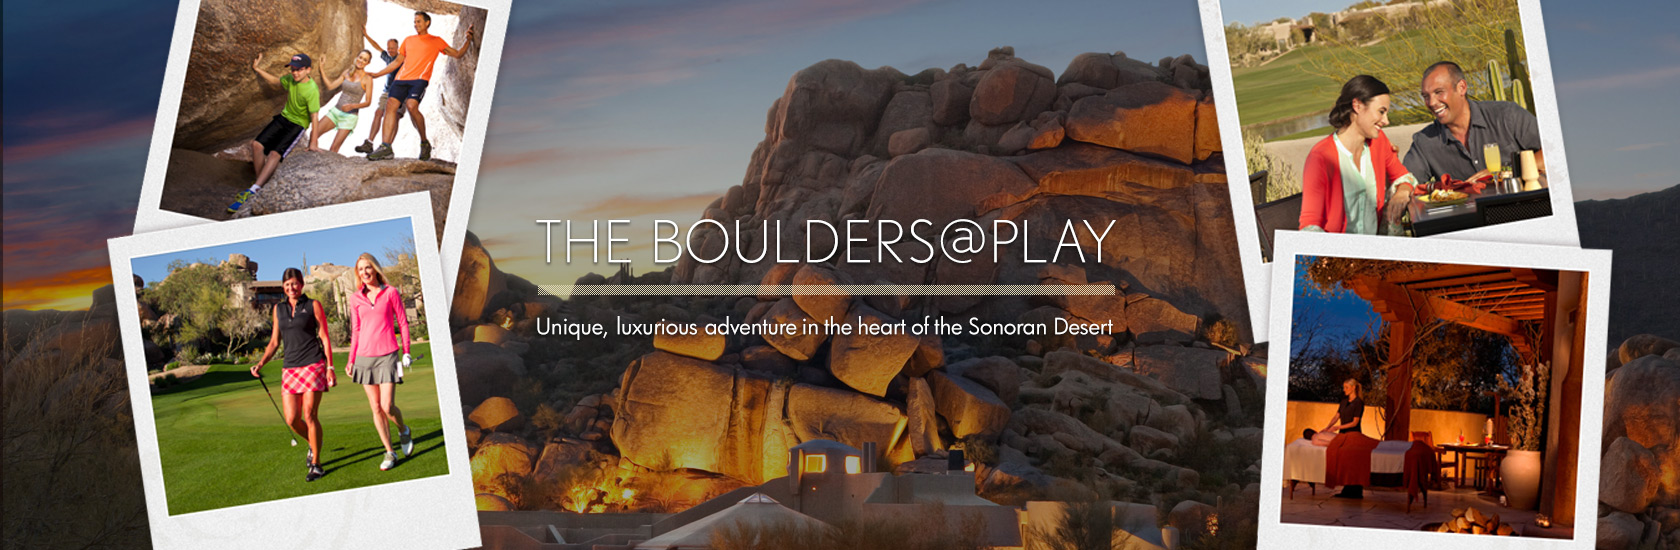 The Boulders@Play